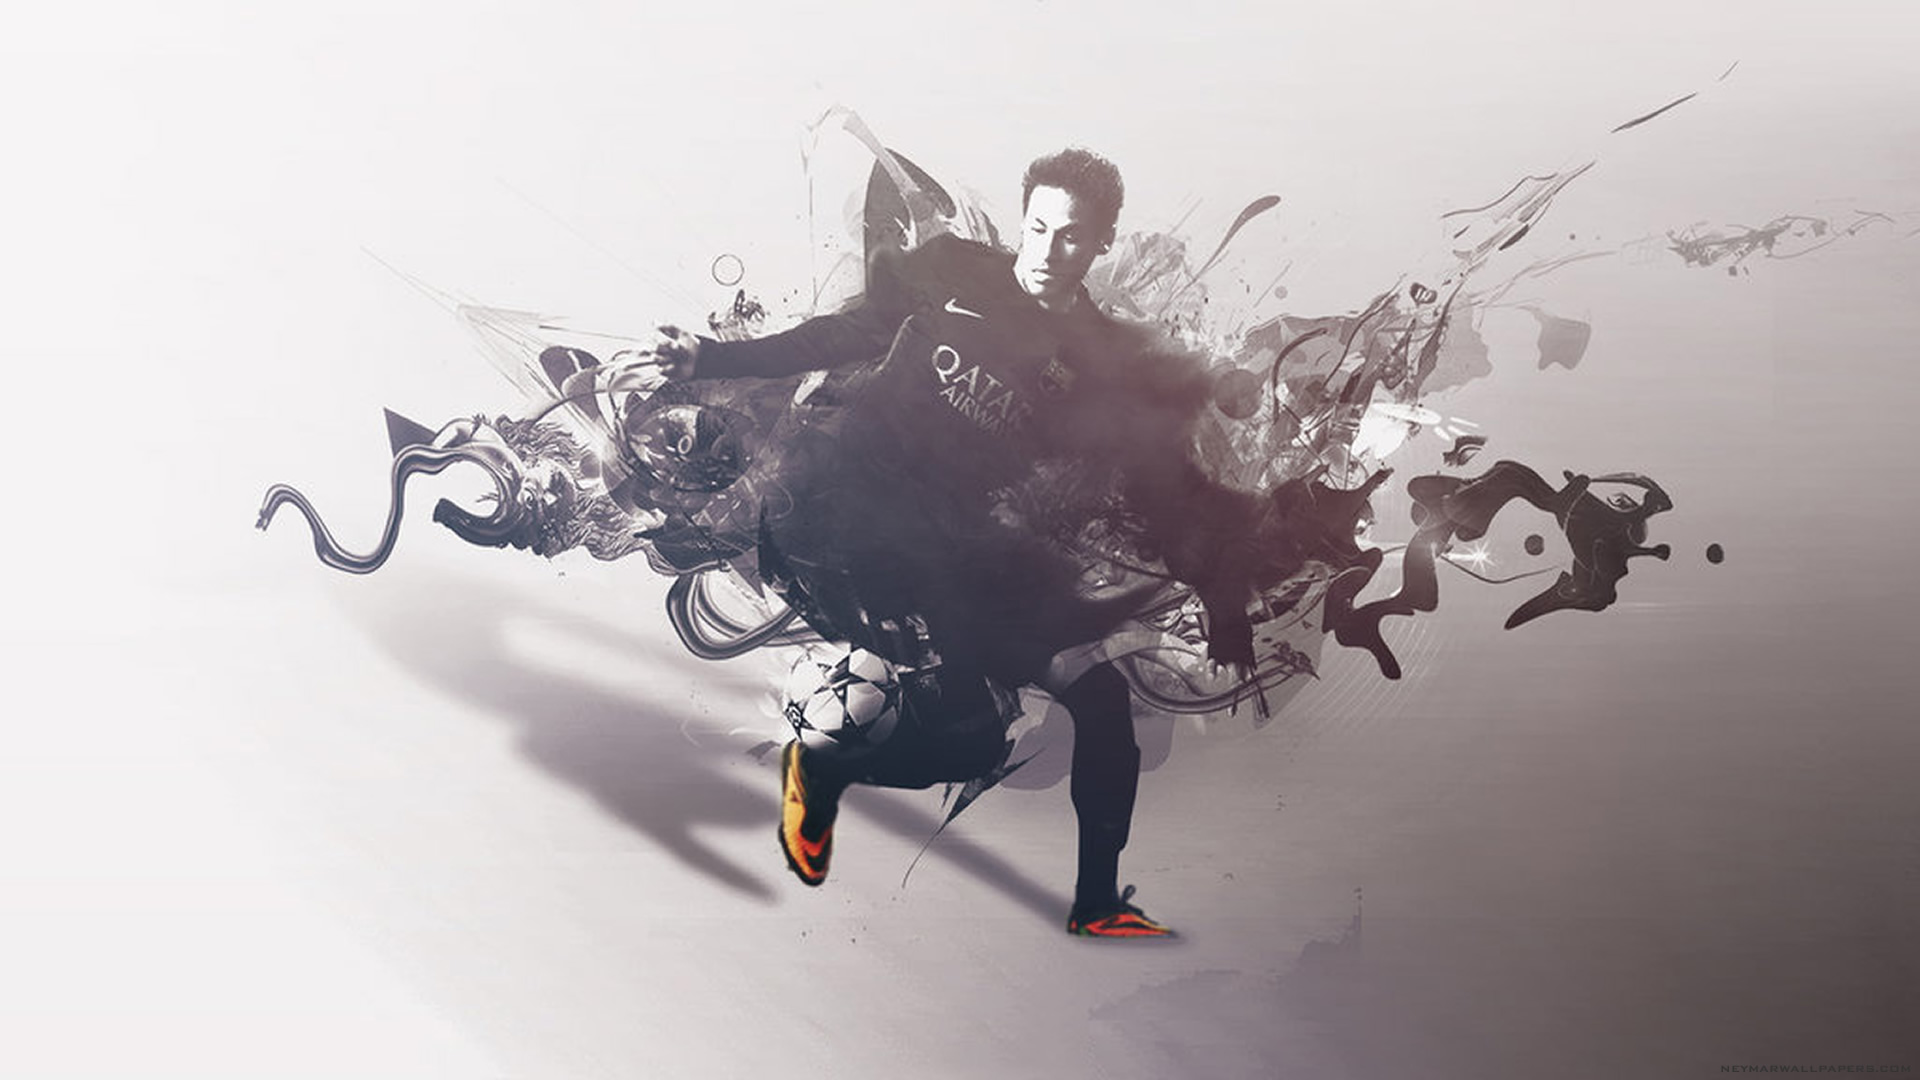 Neymar in black wallpaper